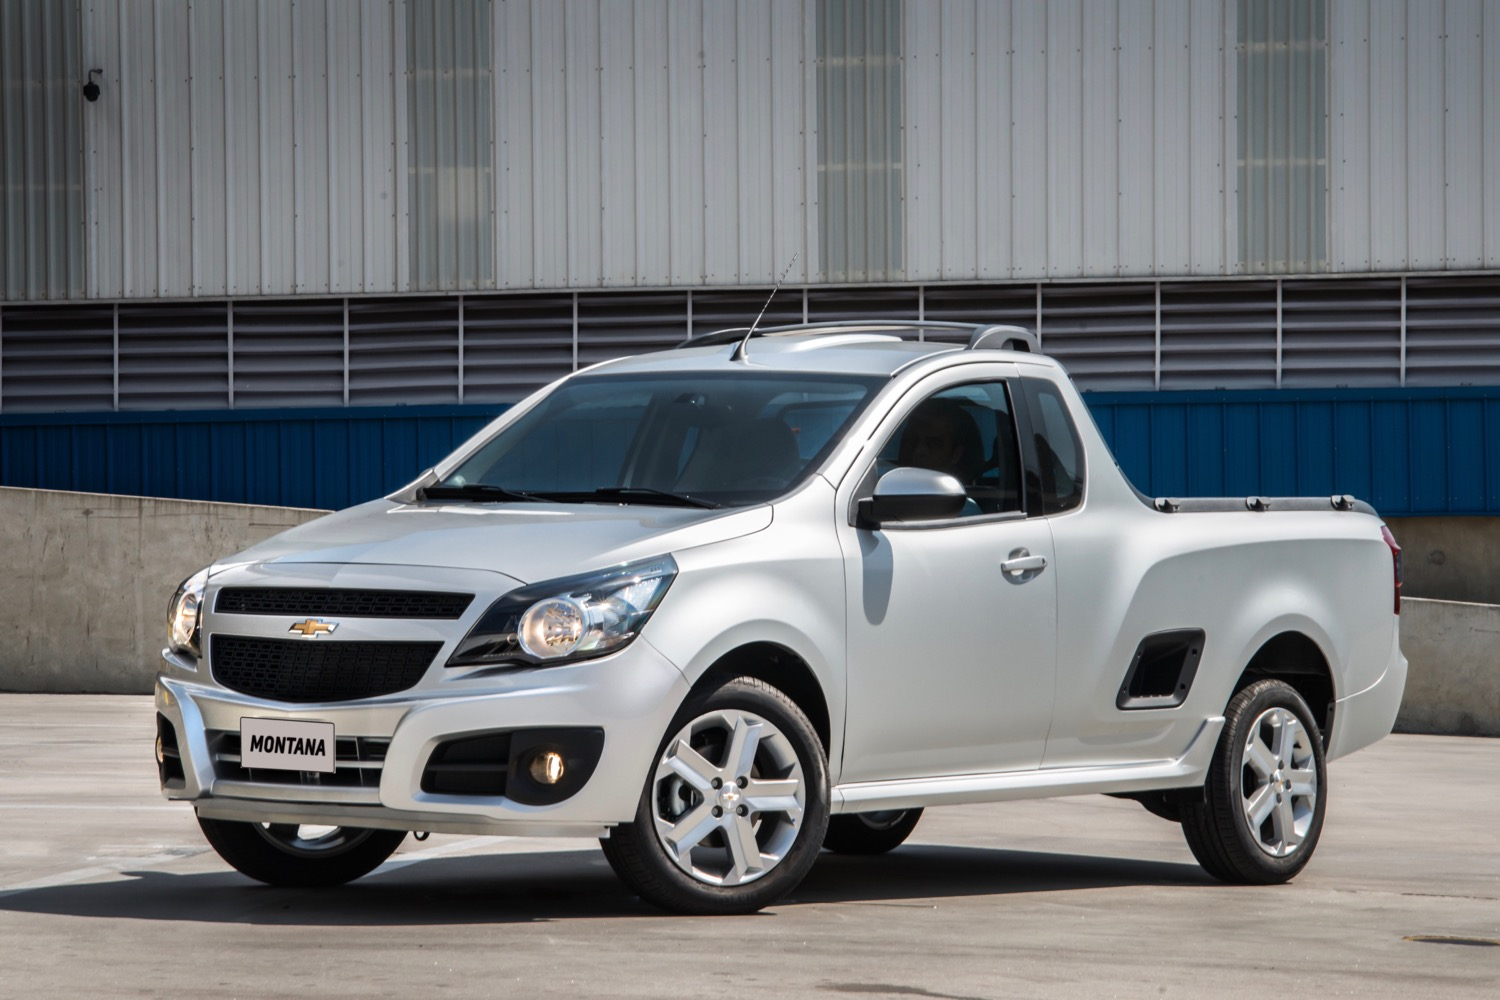 chevrolet reportedly planning new mini pickup truck to rival ford digital trends. Black Bedroom Furniture Sets. Home Design Ideas